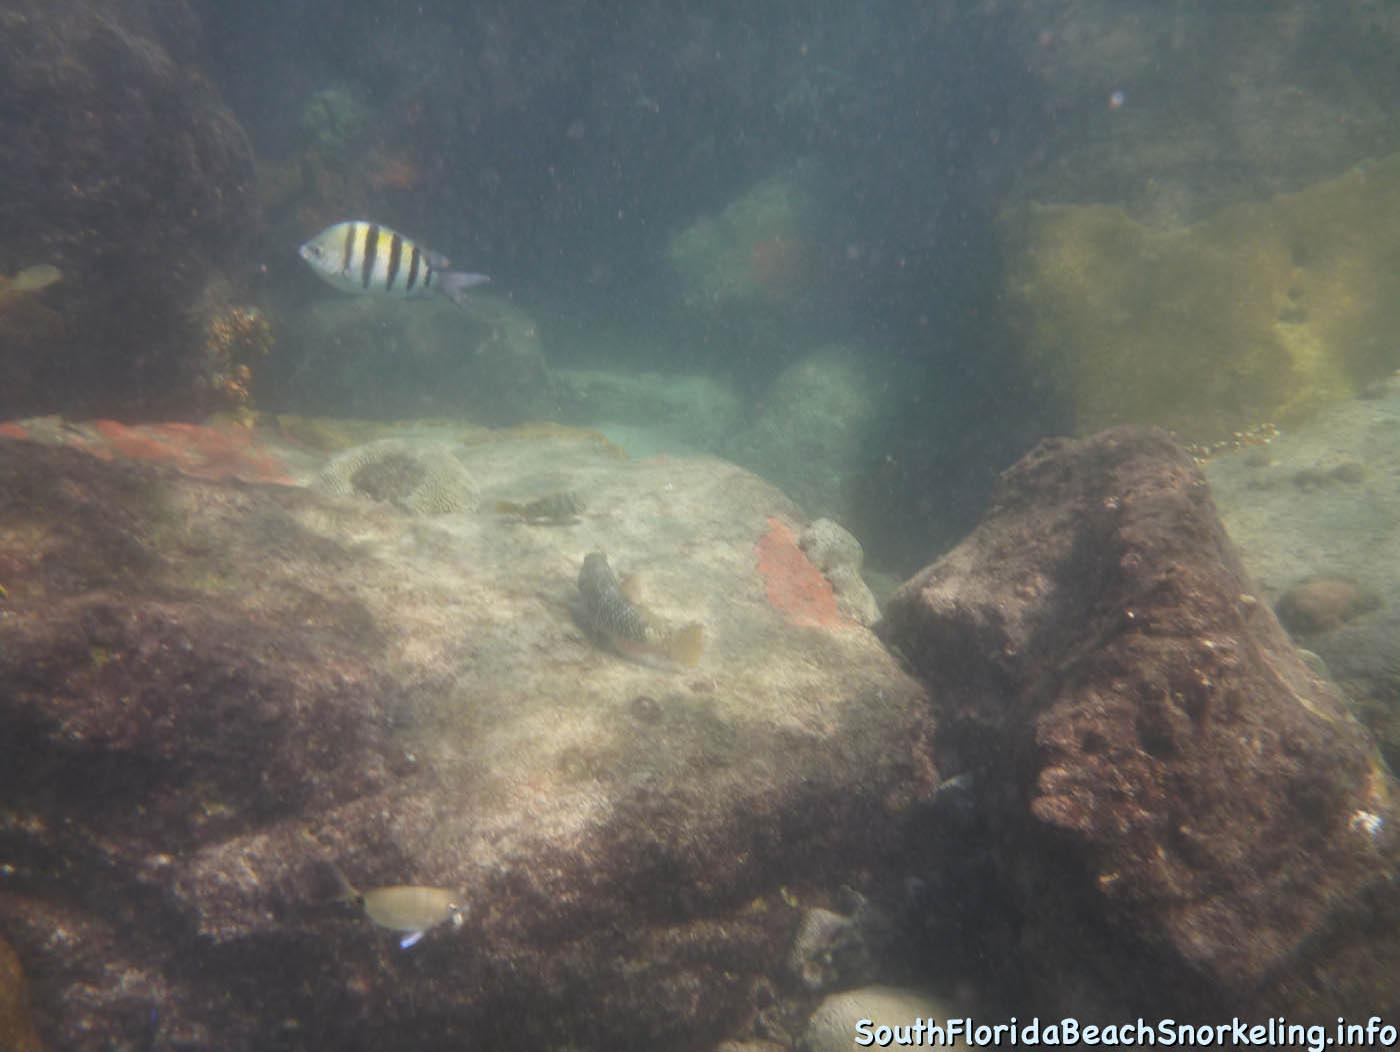 South_Side_Jetty_of_Port_of_Palm_Beach-southfloridabeachsnorkeling.info-02.jpg